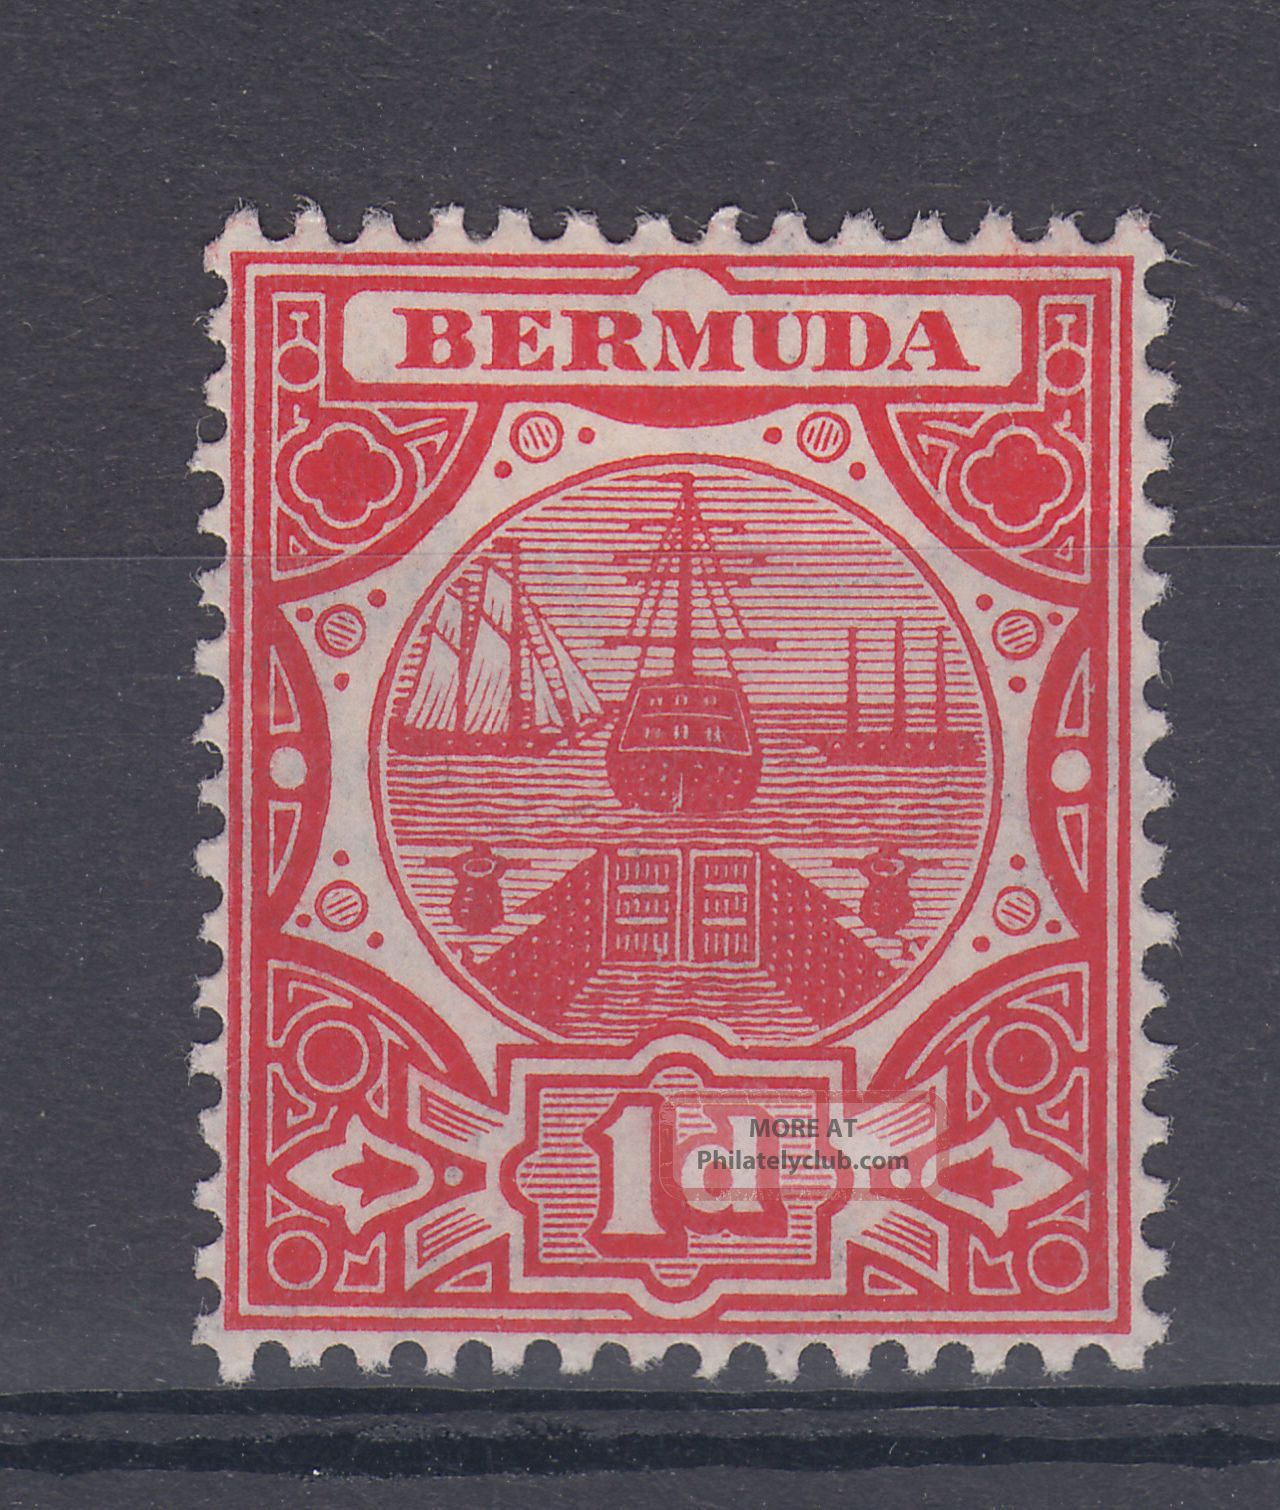 1908 Bermuda M/m Dry Dock 1d Stamp (sg 38) British Colonies & Territories photo